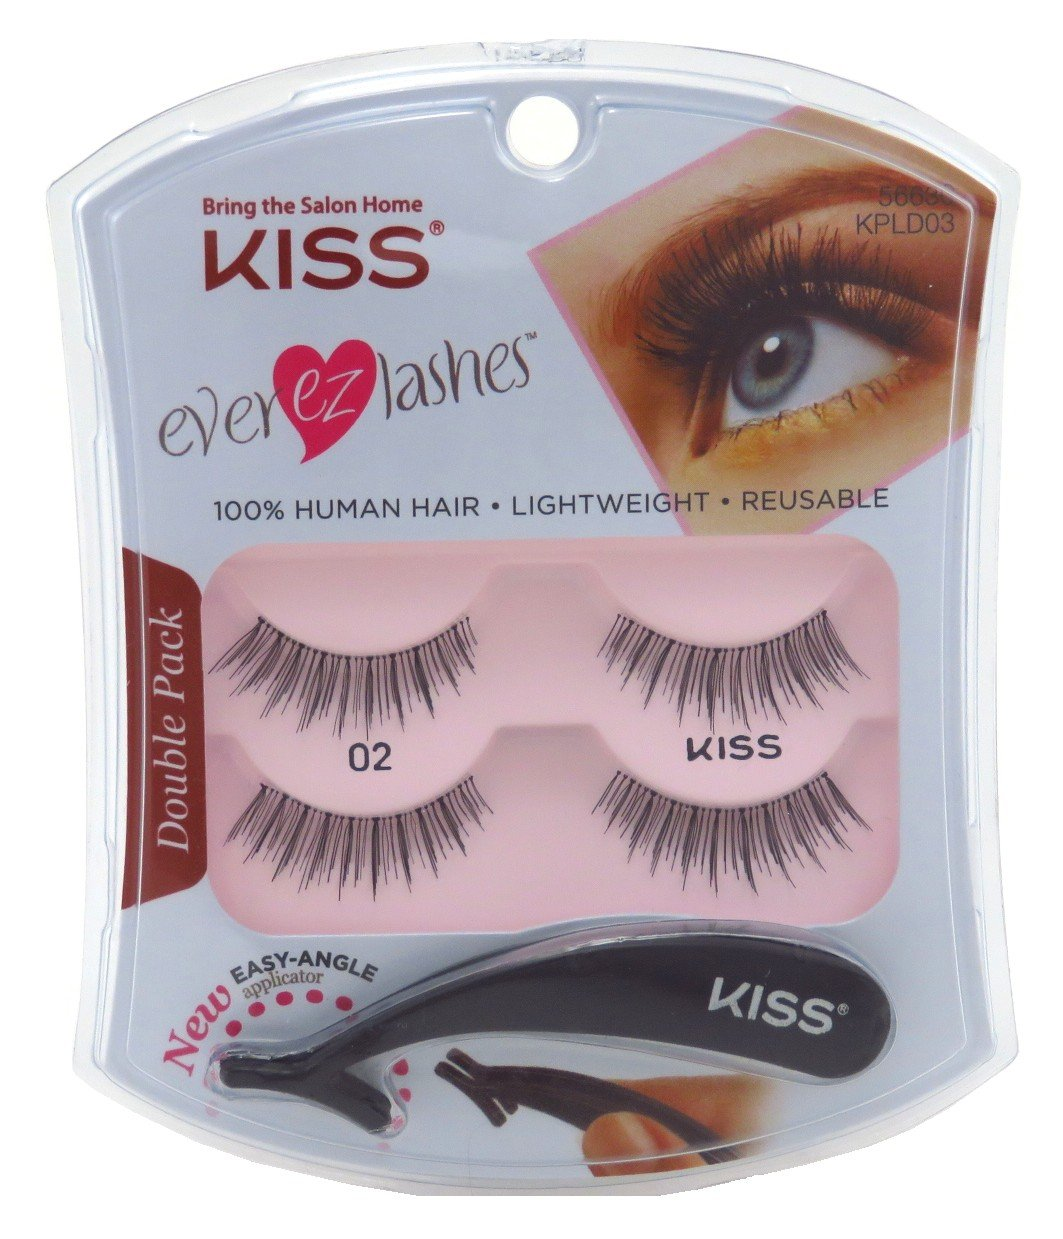 Kiss Ever Ez 02 Lashes Double Pack KPLD03